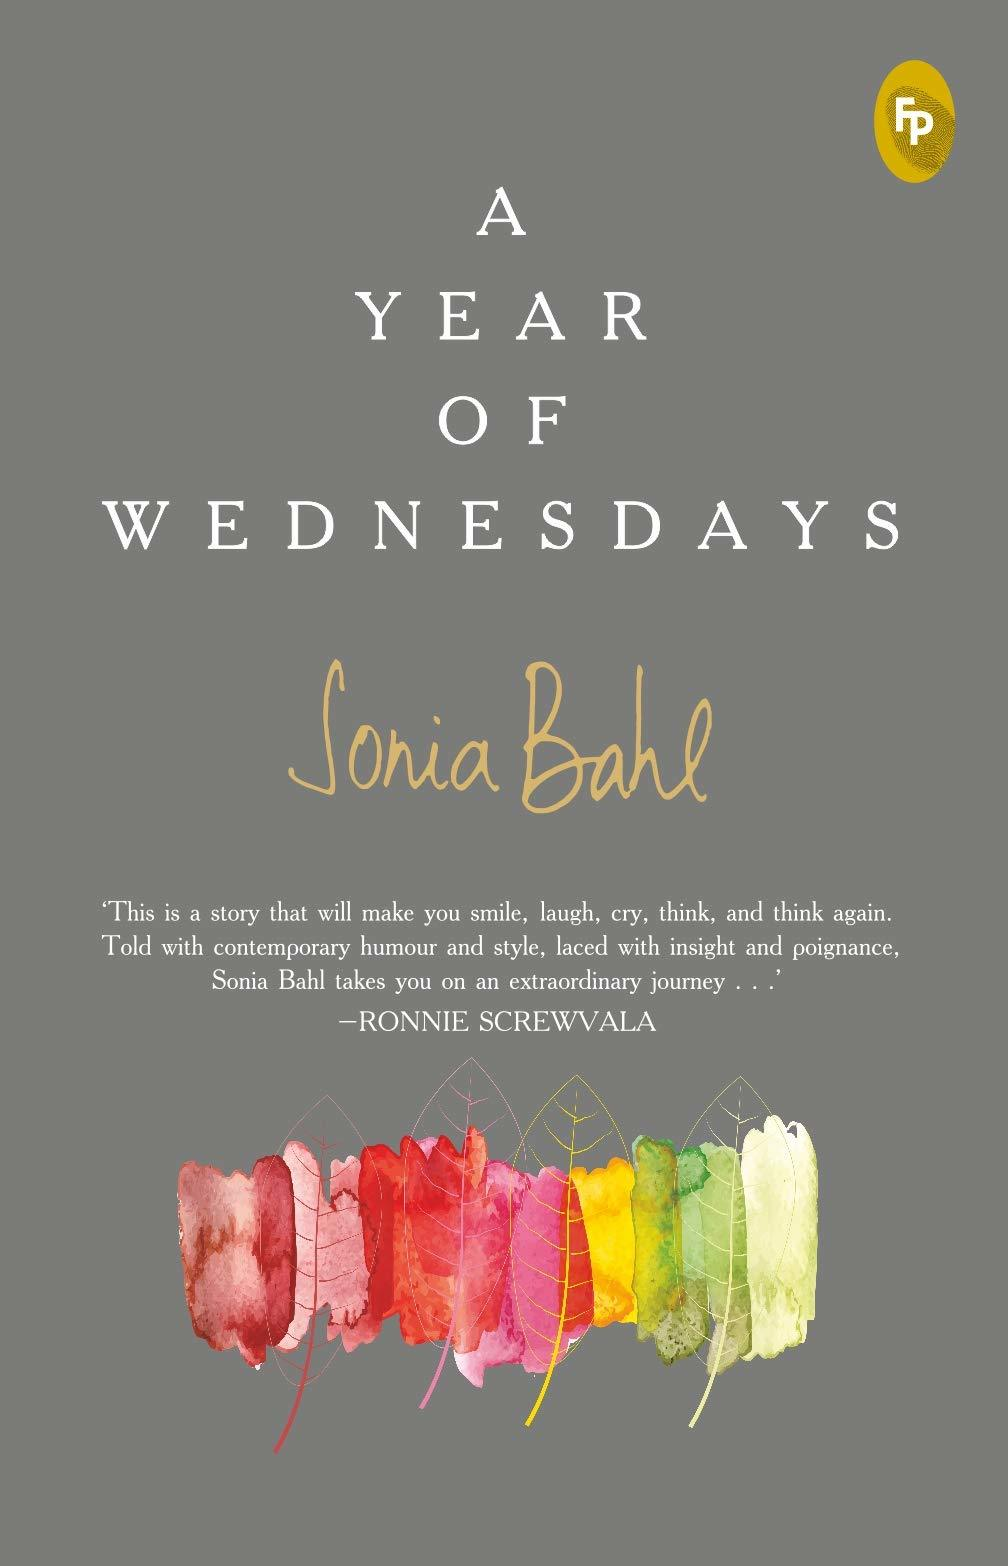 A Year of Wednesdays